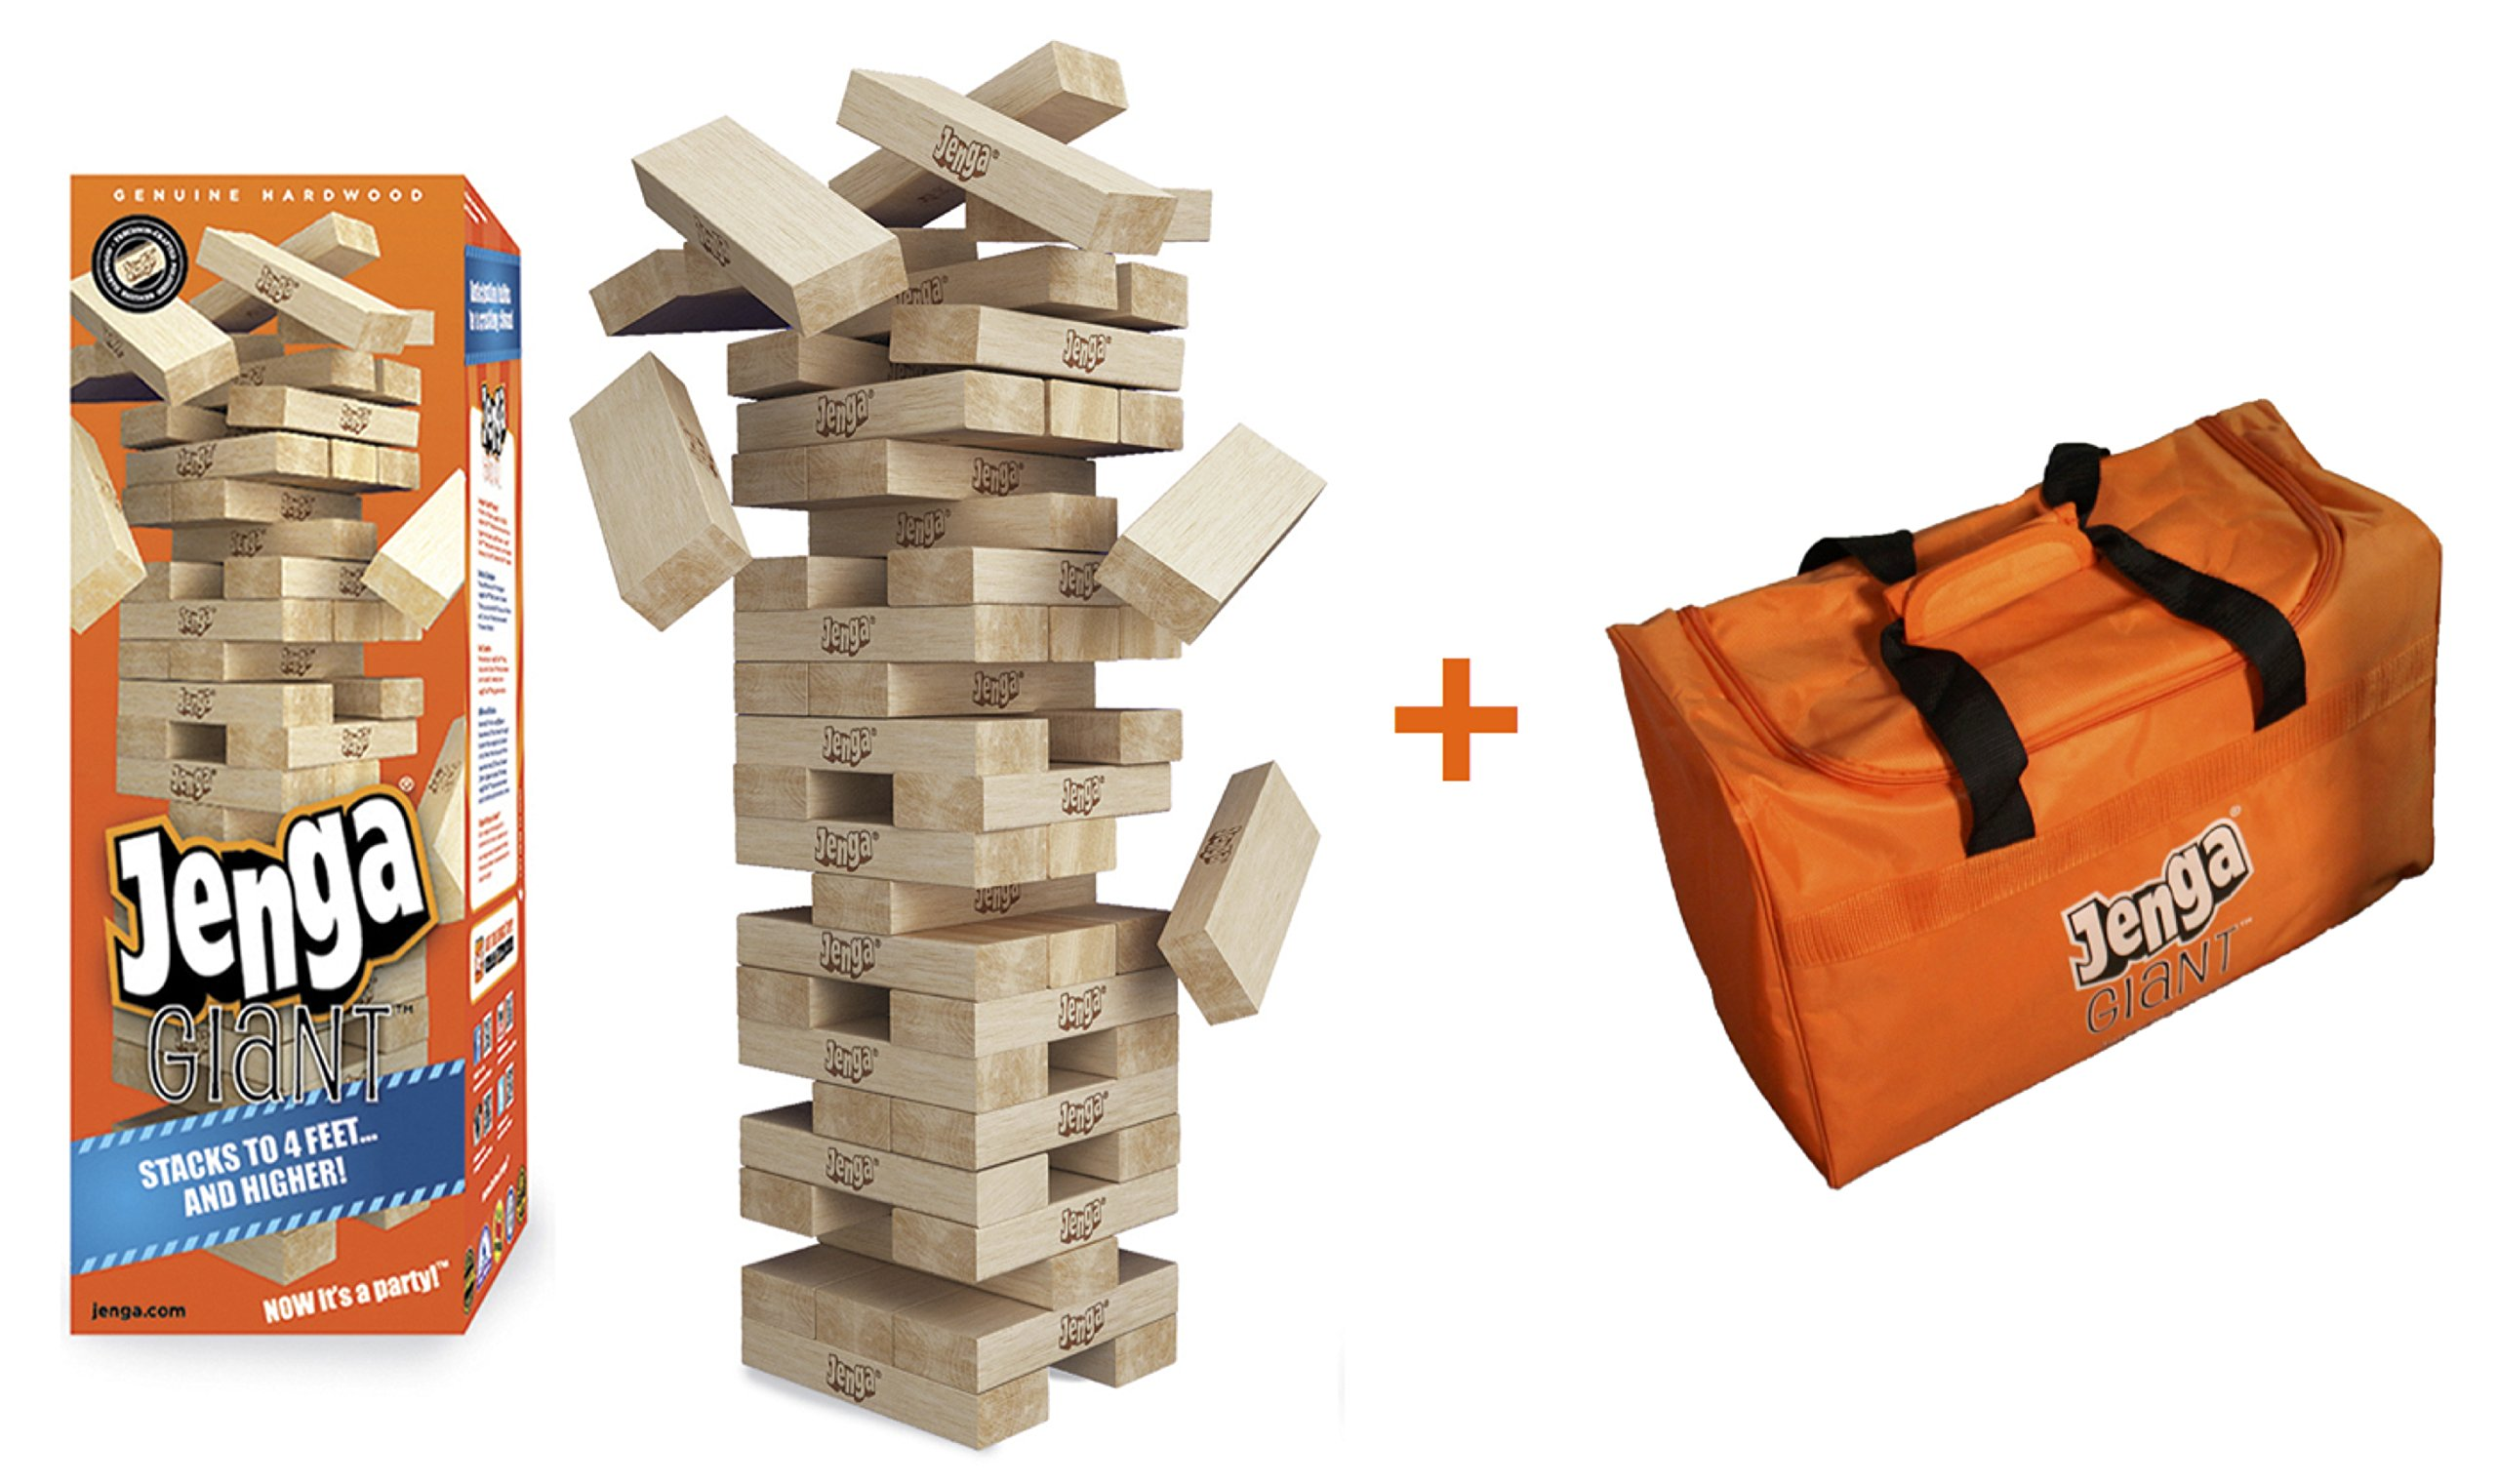 Jenga GIANT Genuine Hardwood Game & Carry Bag (Bundle) (Stacks to 4+ feet. Ages 8+) by Jenga